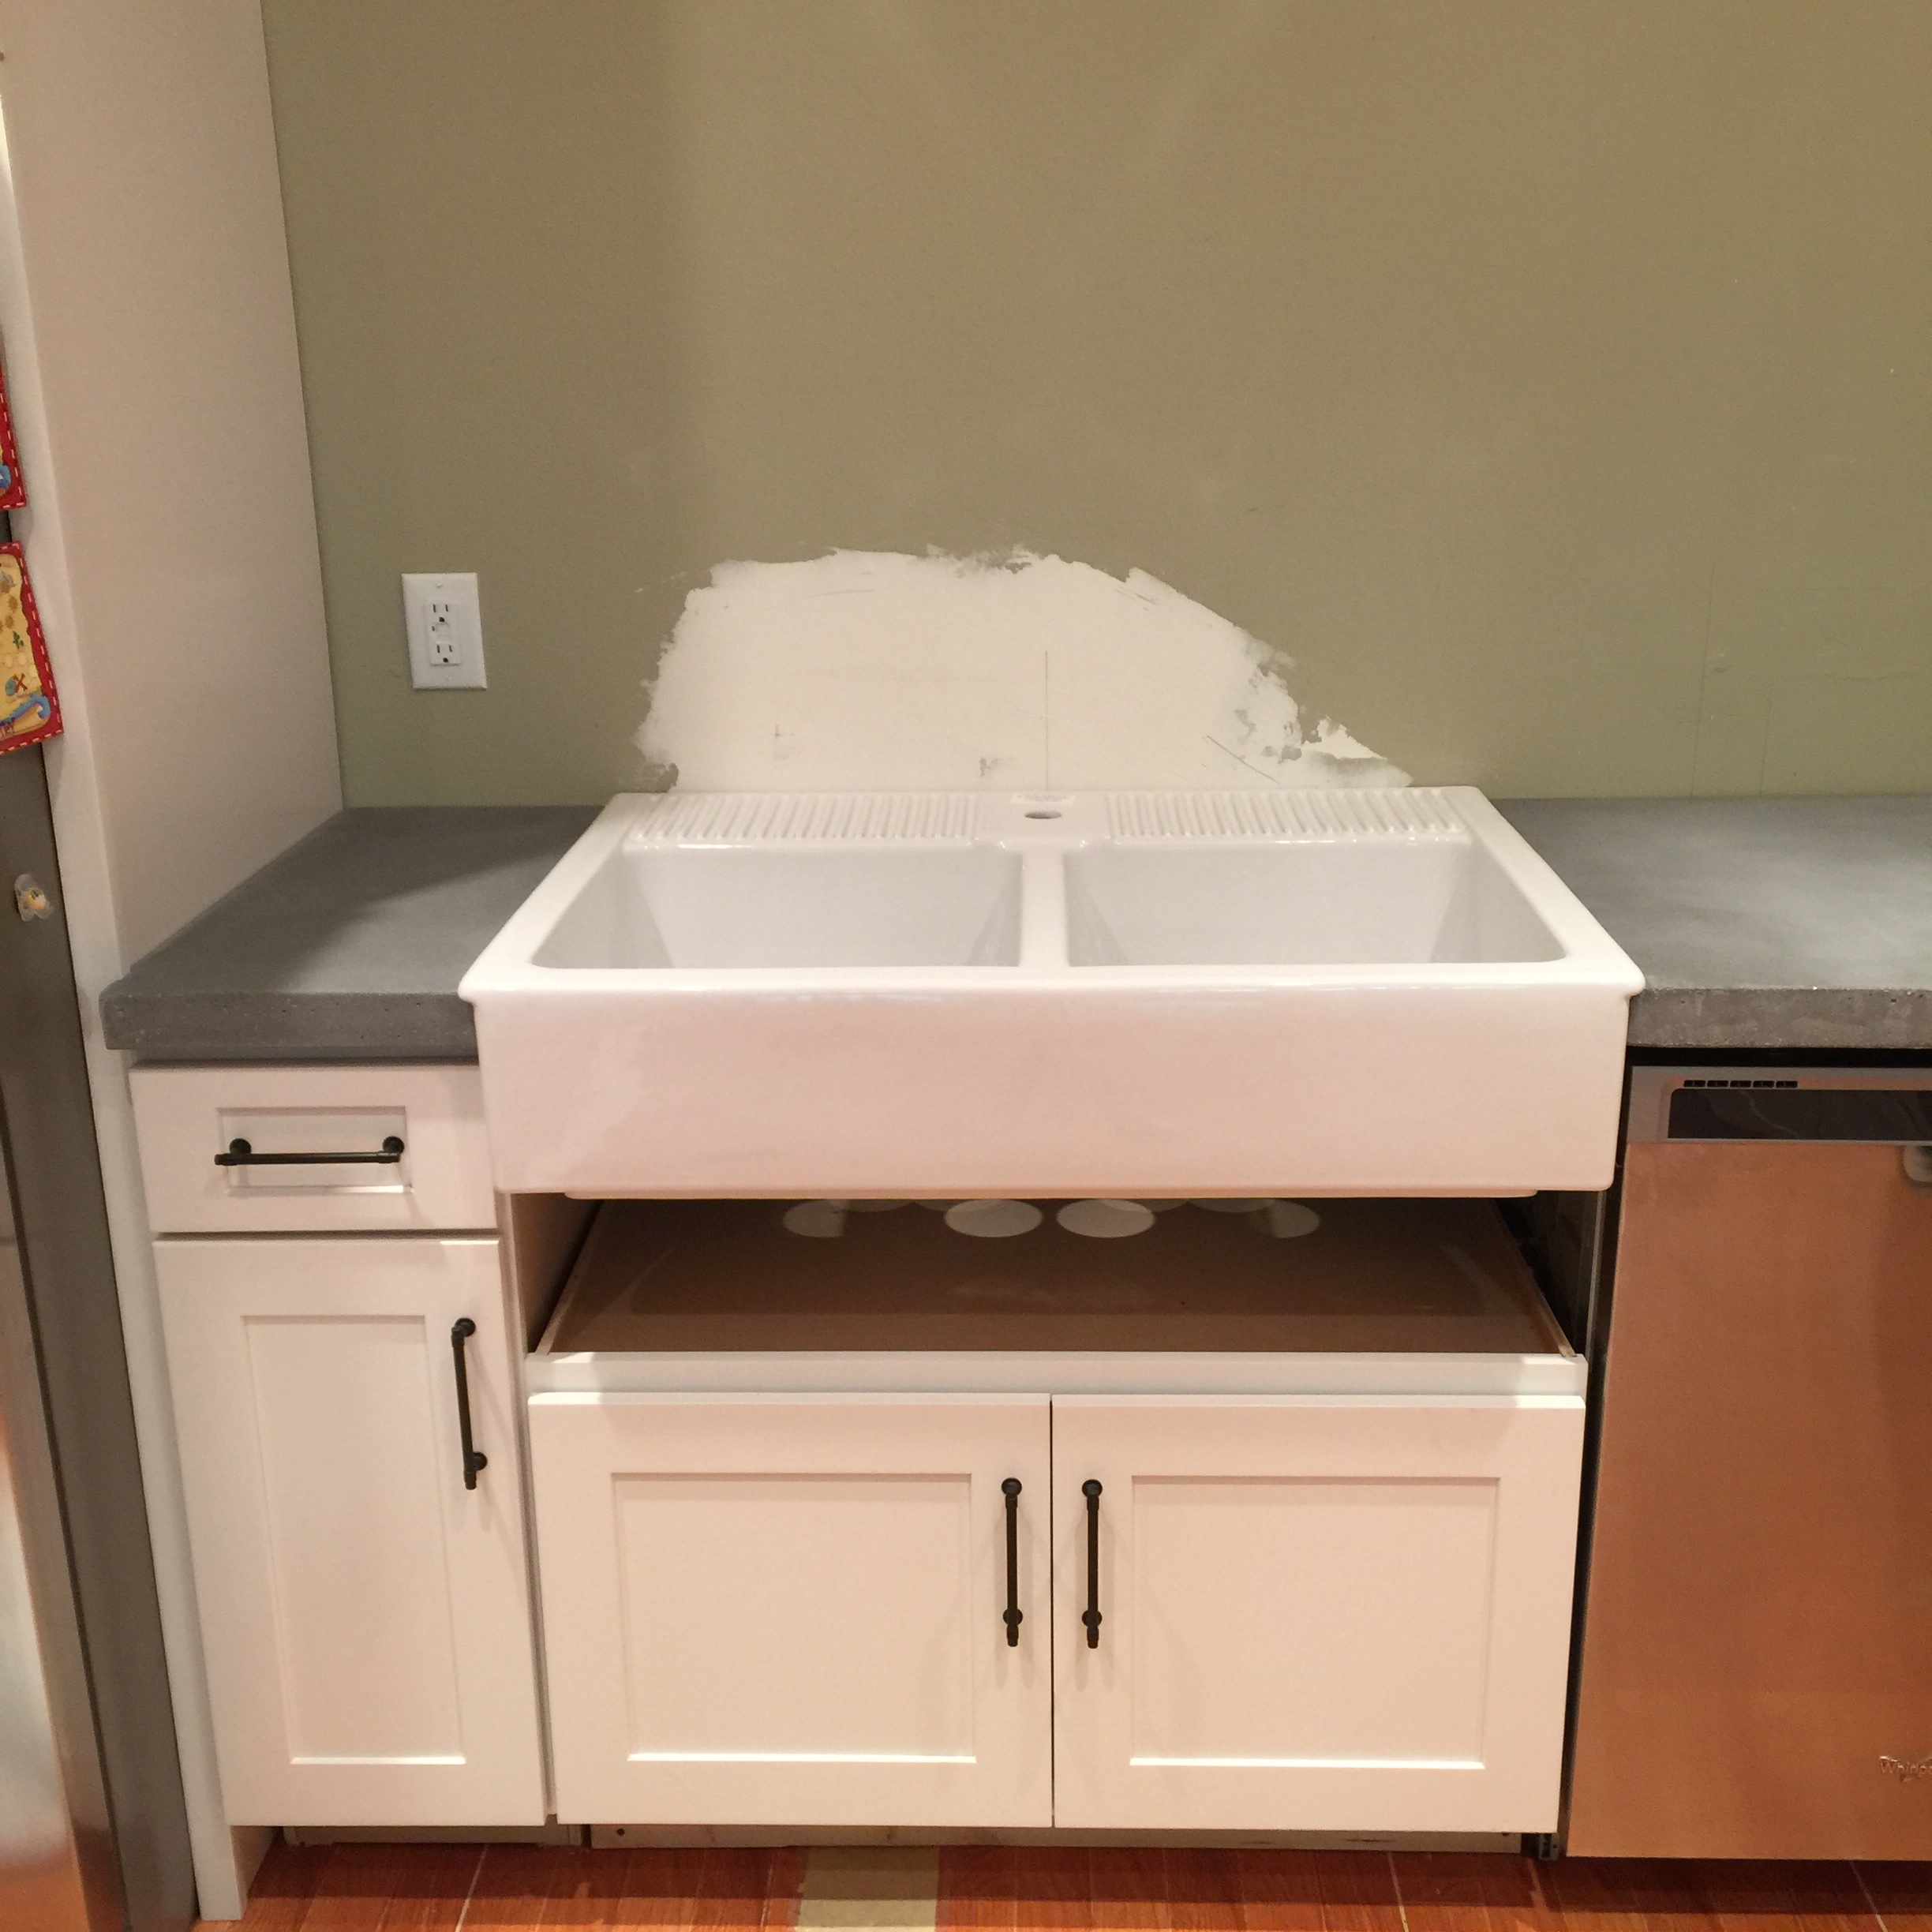 How Much Is Concrete Countertops Concrete Countertop Questions Answered Bower Power